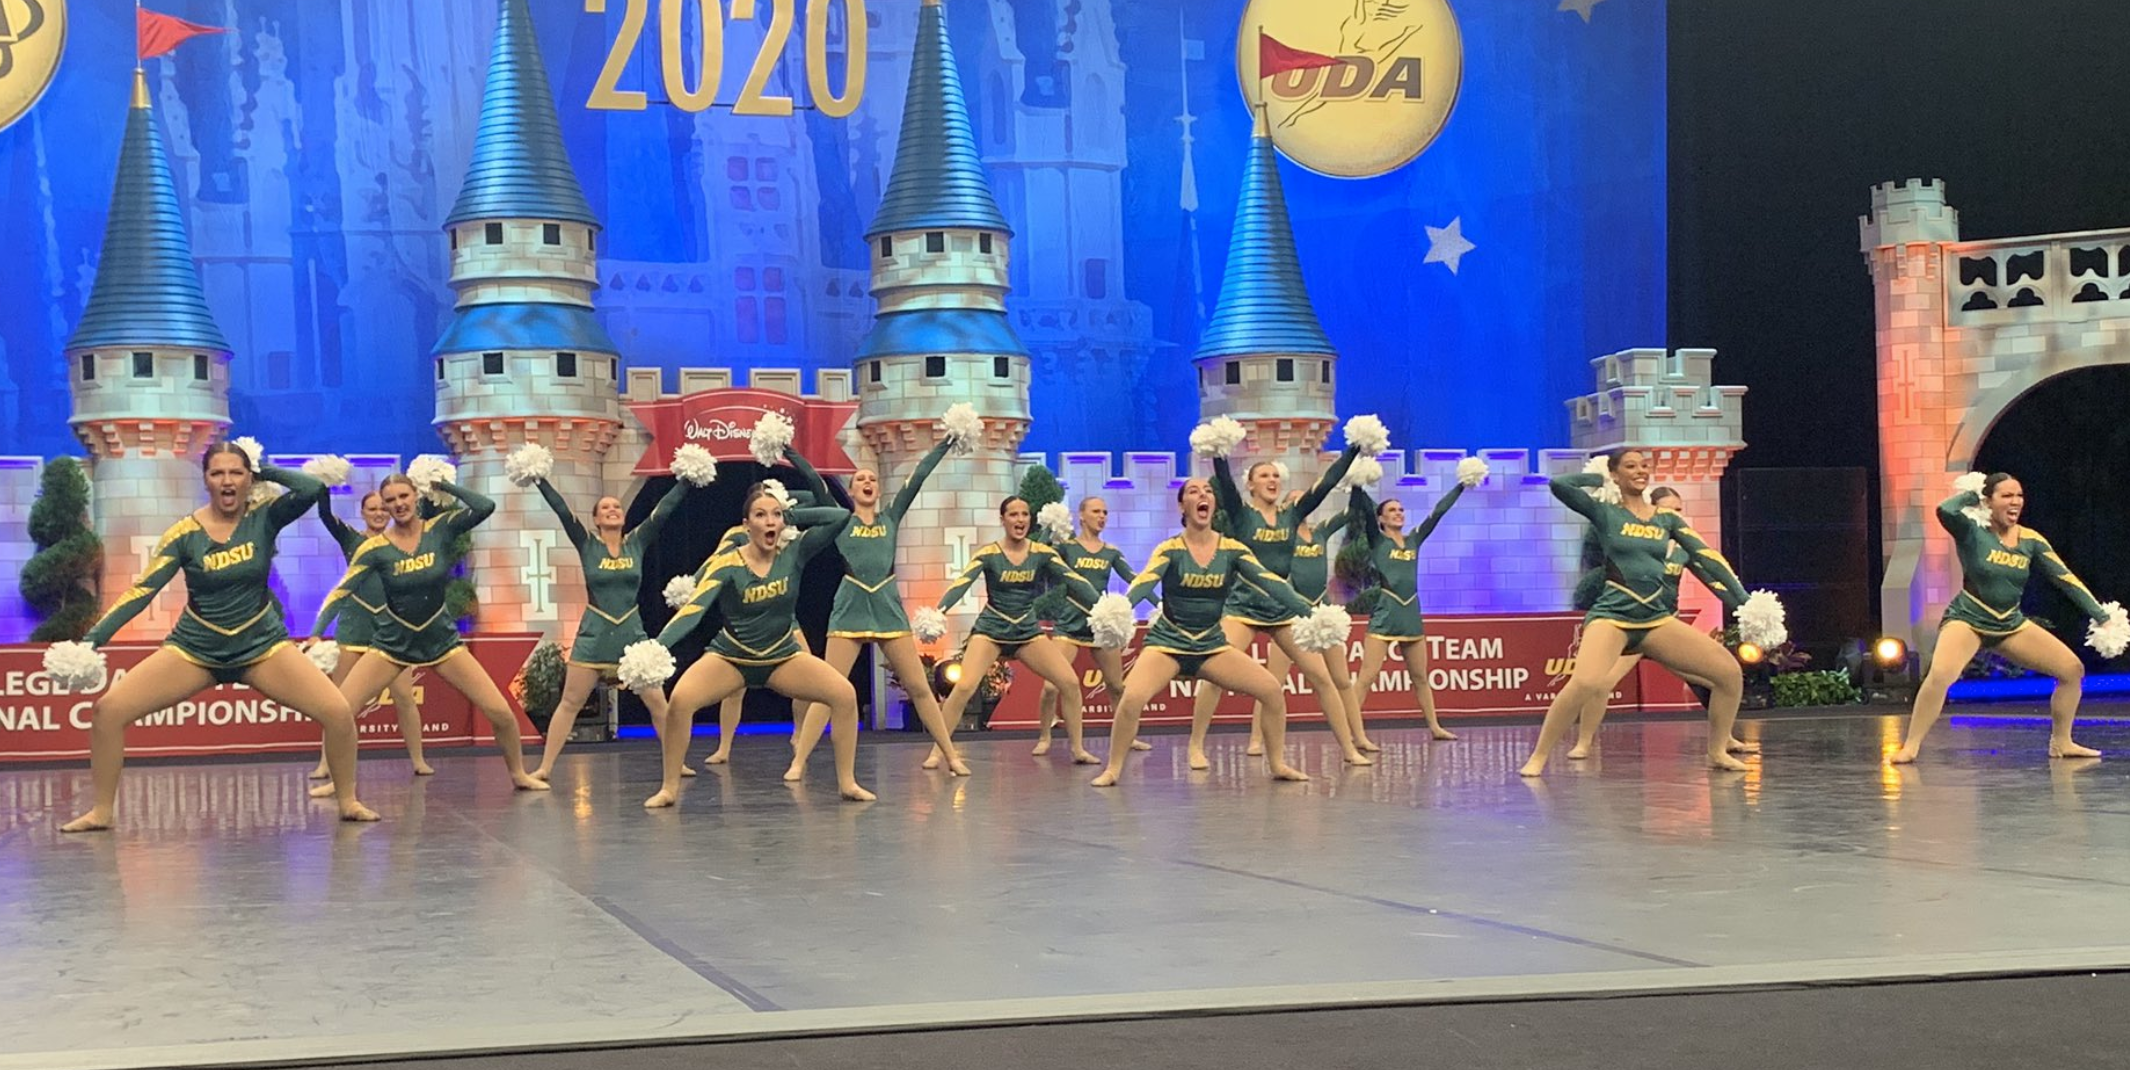 North Dakota State University UDA Nationals